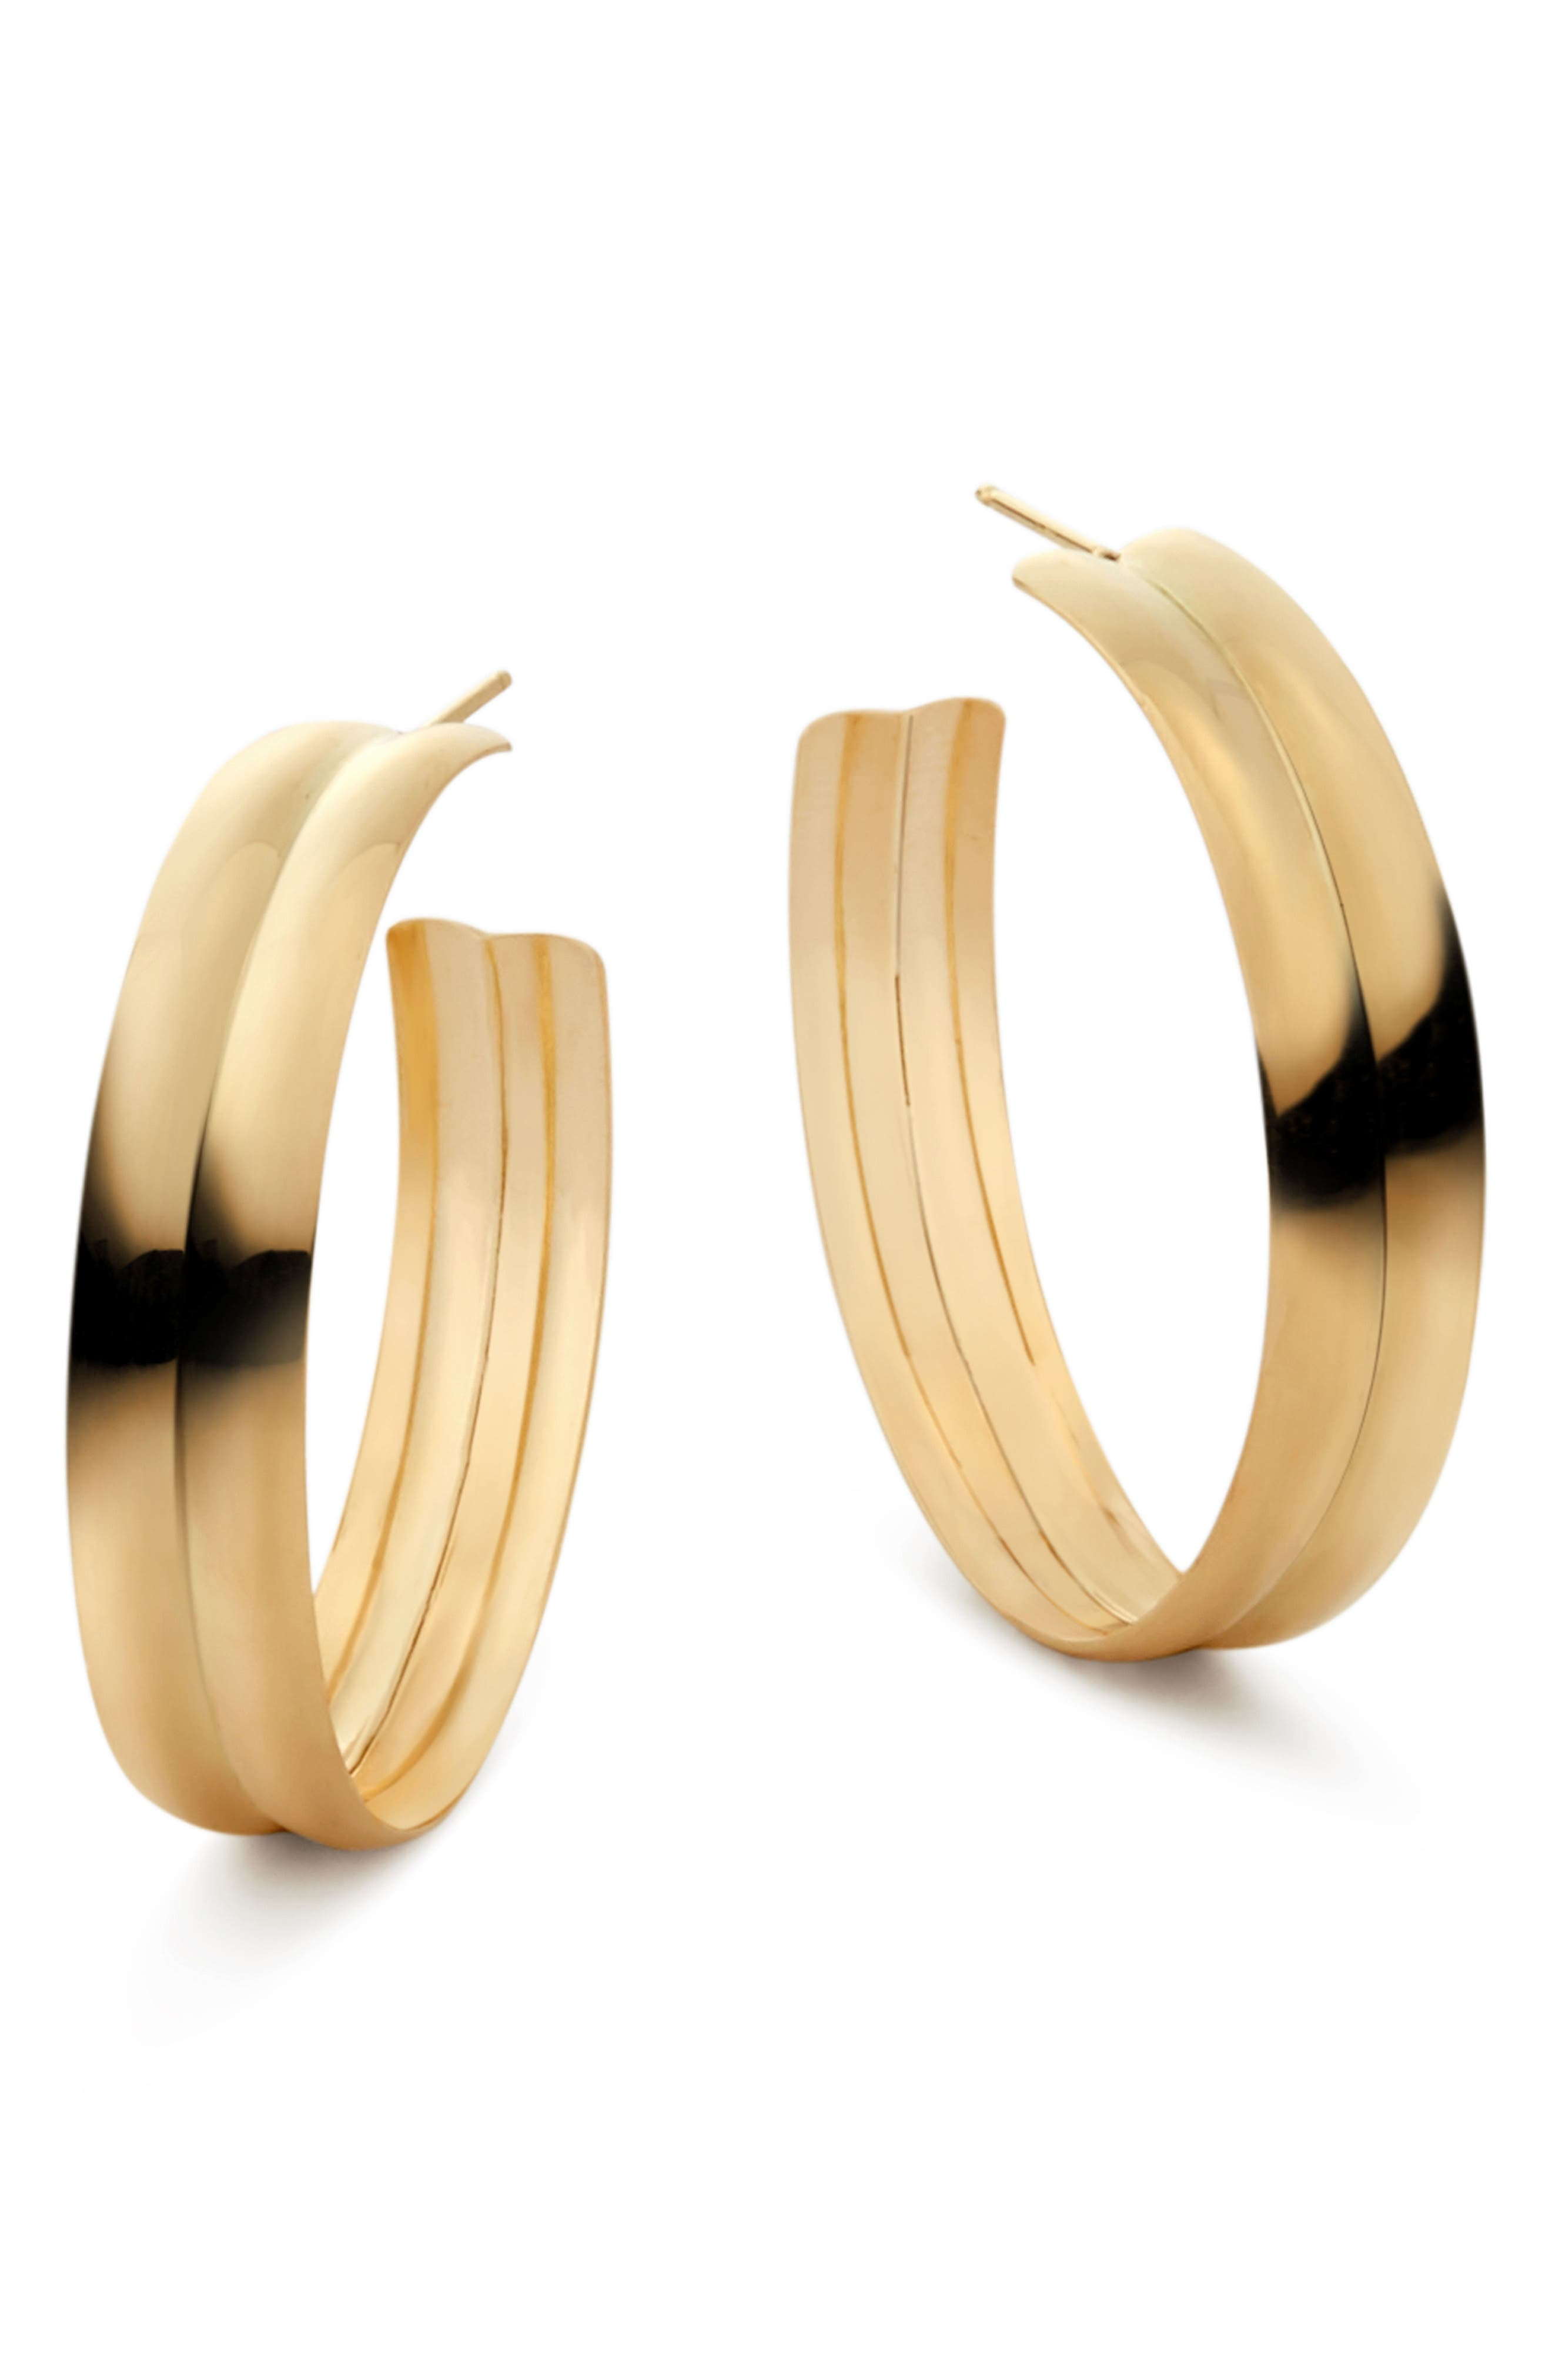 Double Curve Wide Hoop Earrings,                             Main thumbnail 1, color,                             Yellow Gold